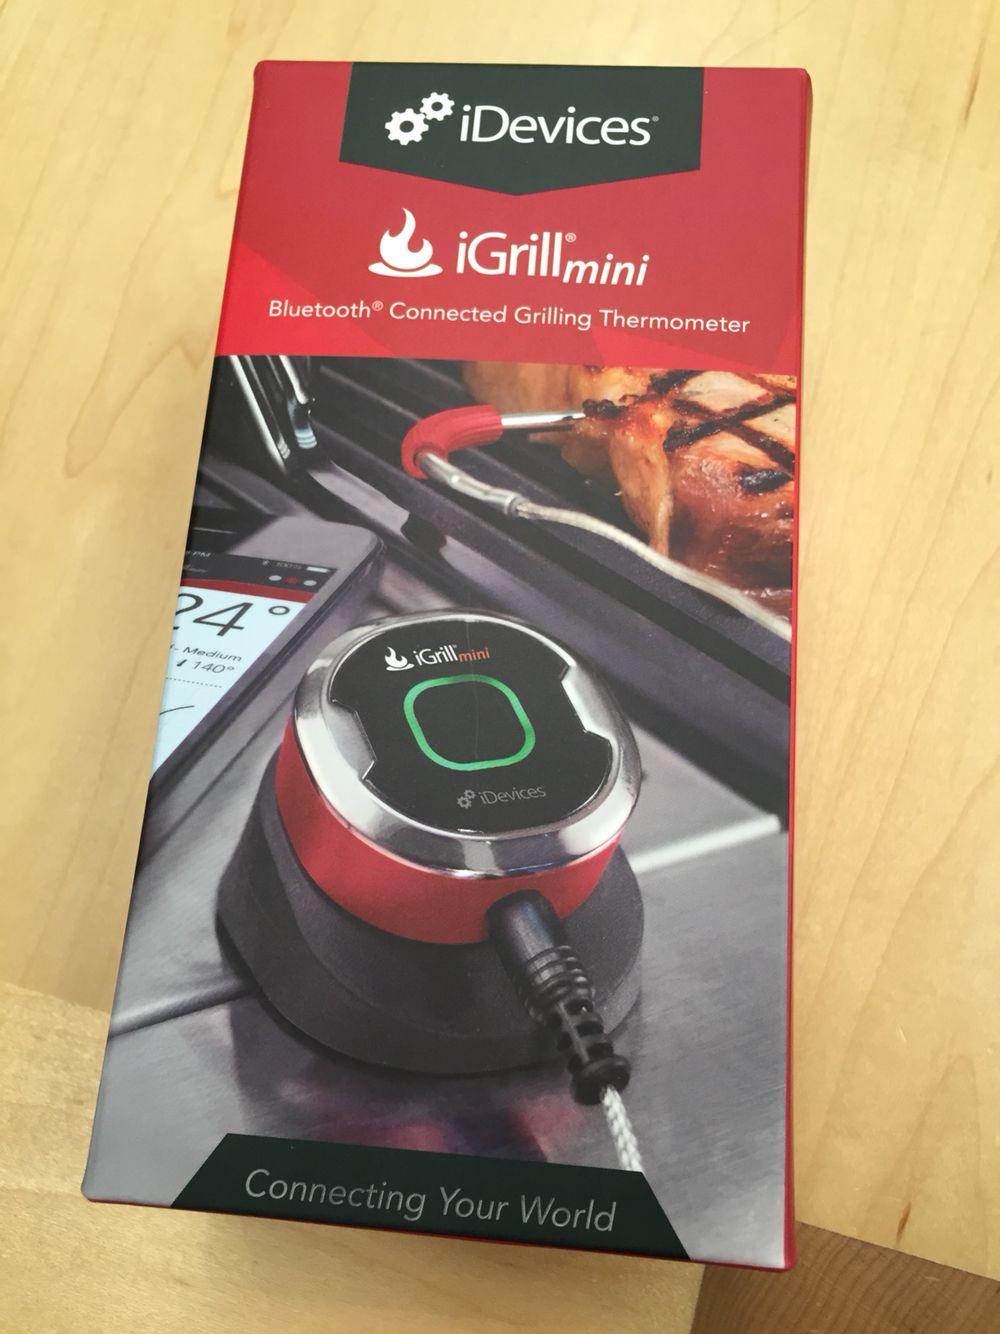 The iGrill Mini. I found this at the Apple store. 39.95